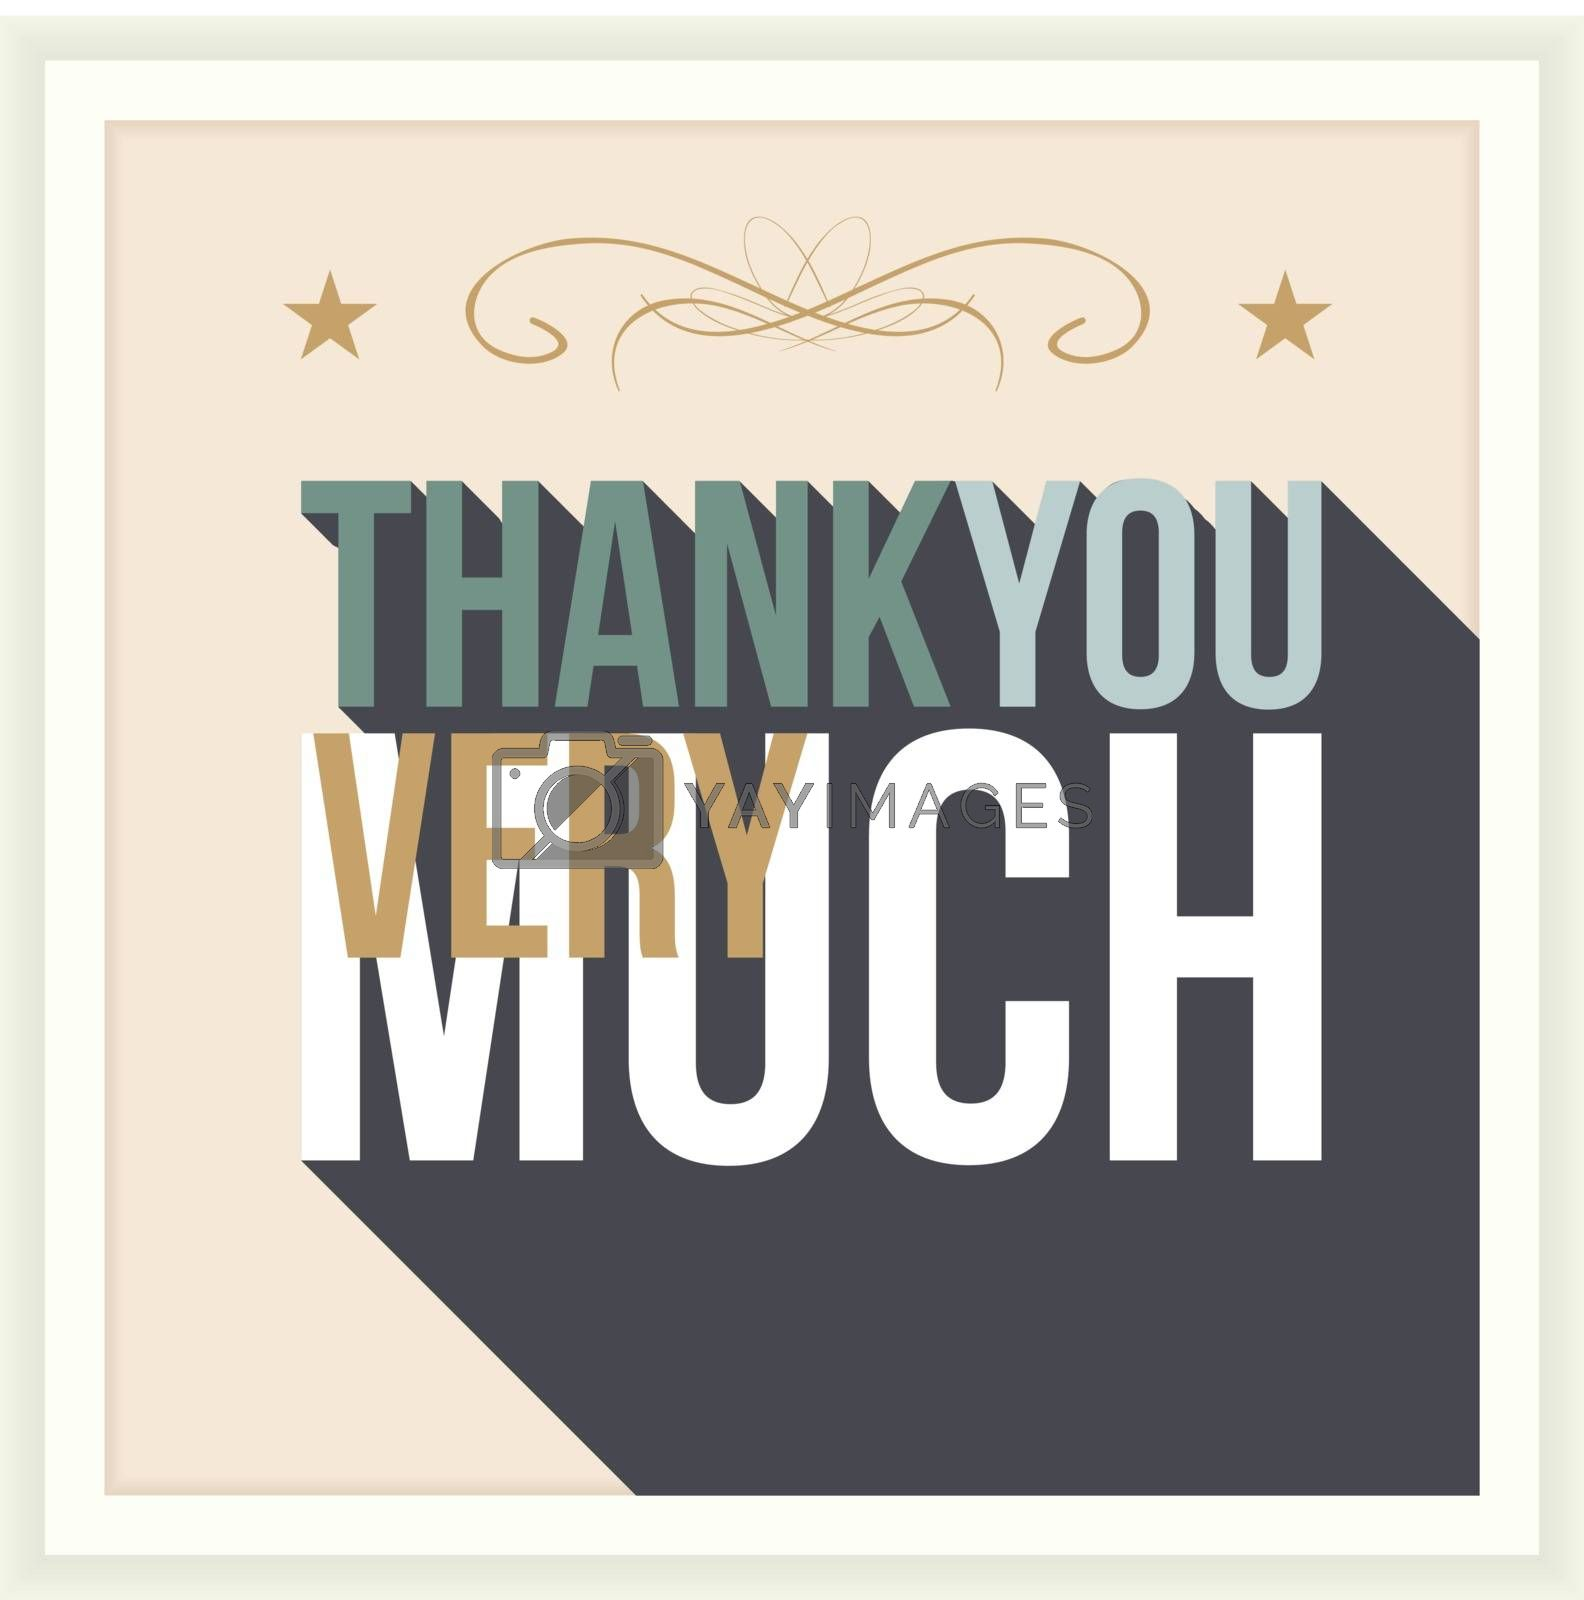 Thank you card, with font, typography style